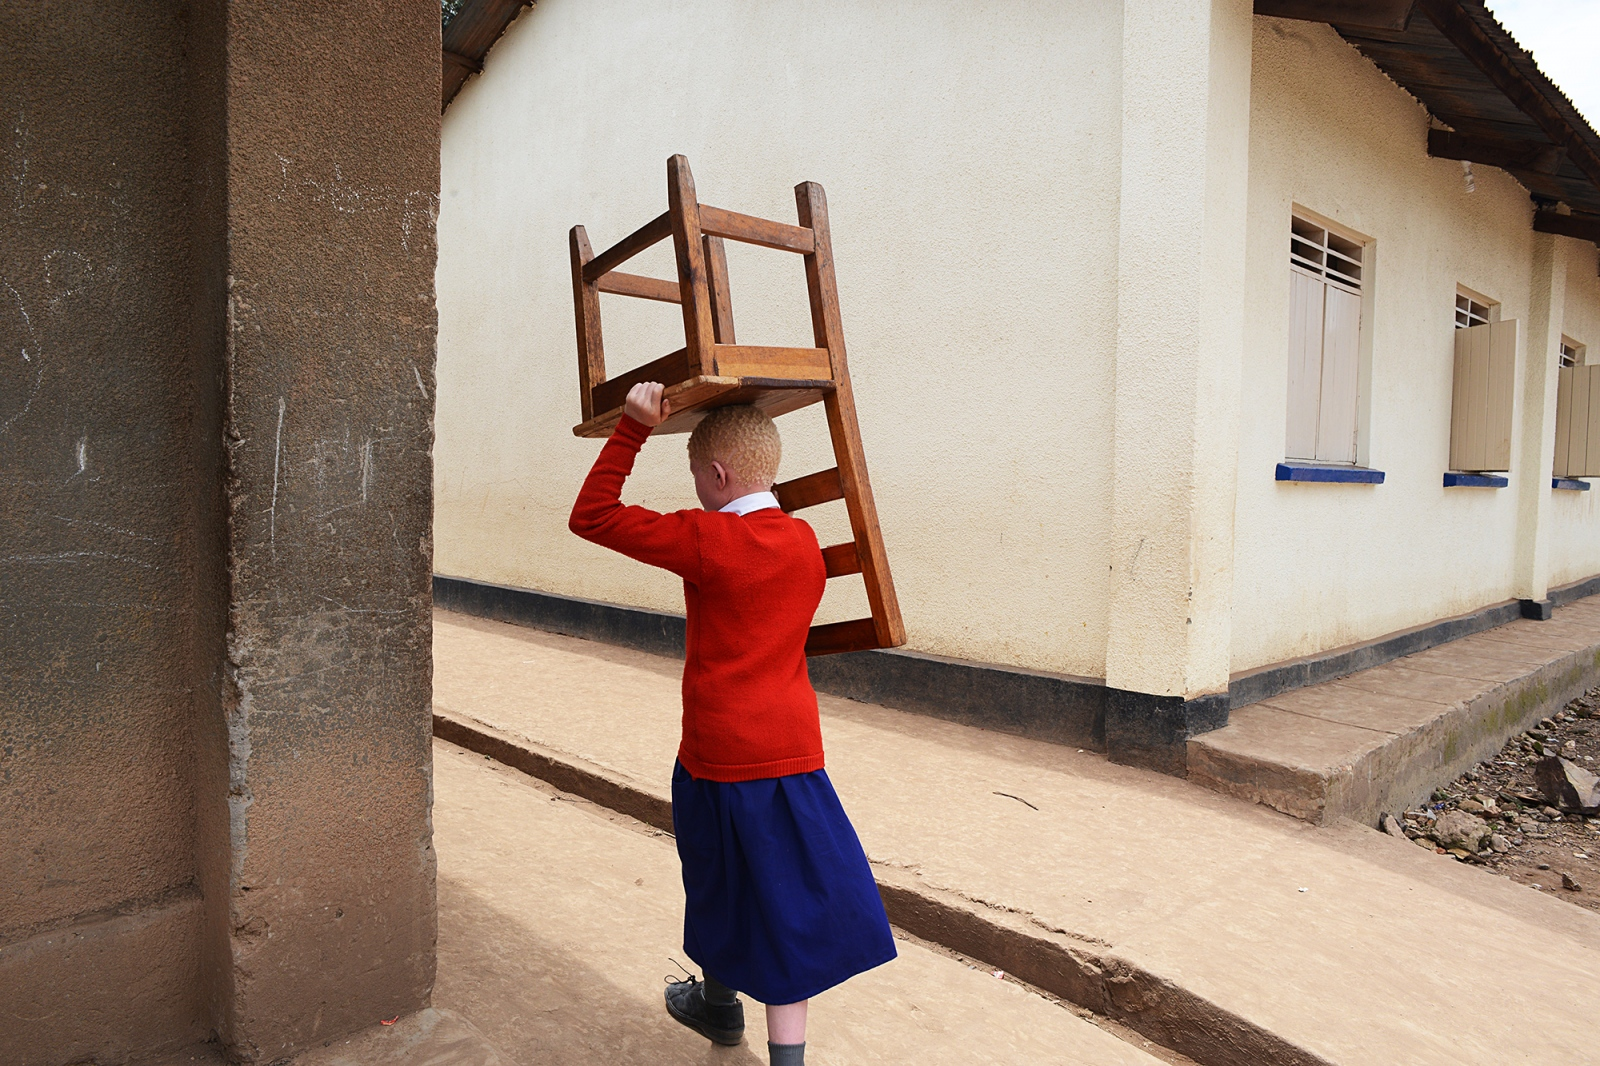 Natasha who was born with albinism carries a chair back to her classroom after recess. Albinism is a genetic condition that occurs in all racial and ethnic groups throughout the world but in Uganda and other African countries many born with the condition are discriminated against in ways that often lead to violence.